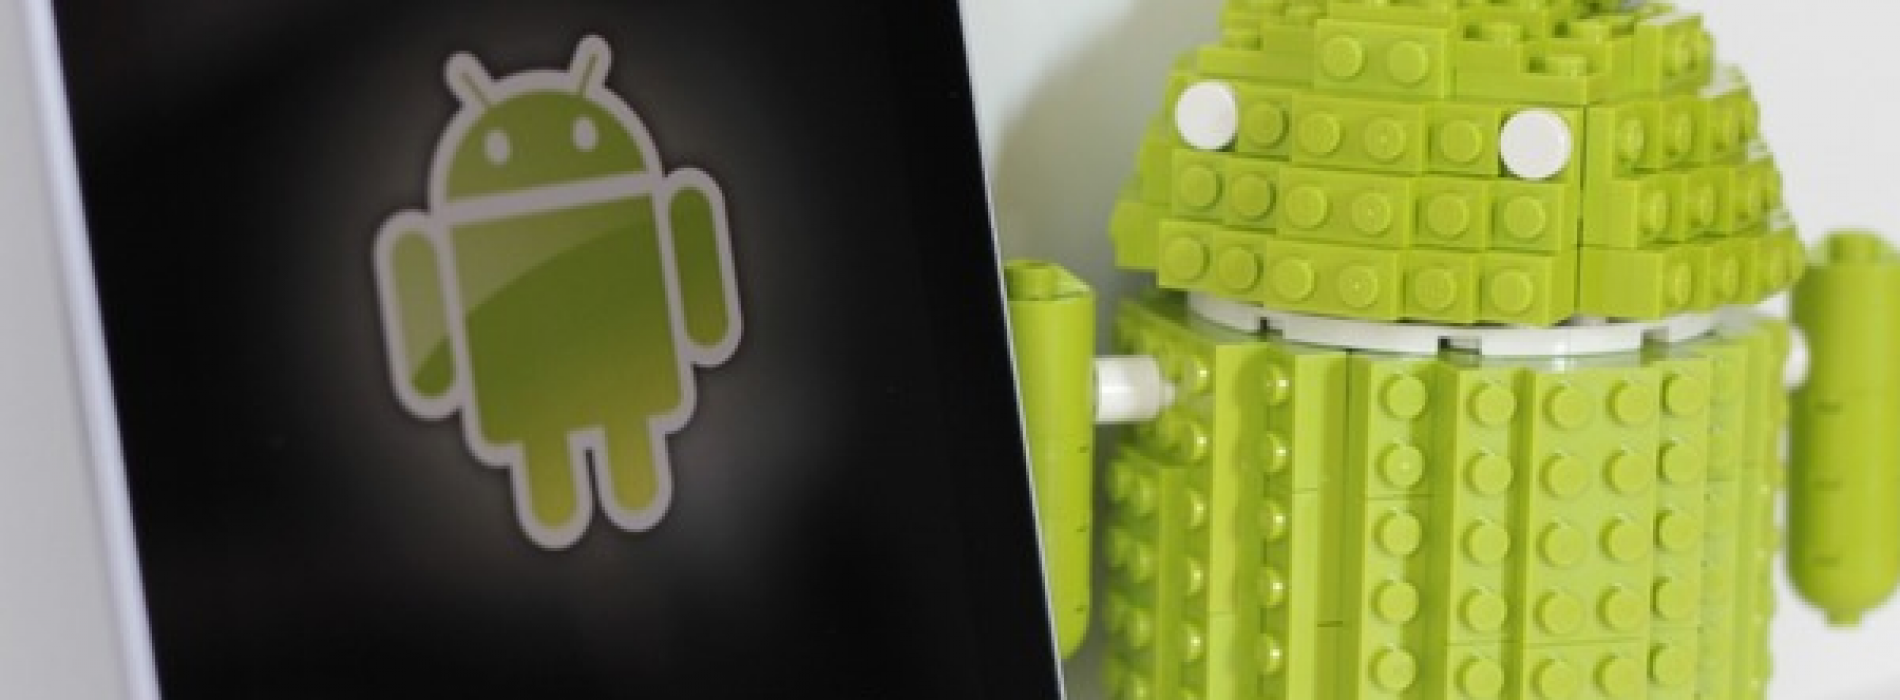 This Android Lego project needs your support